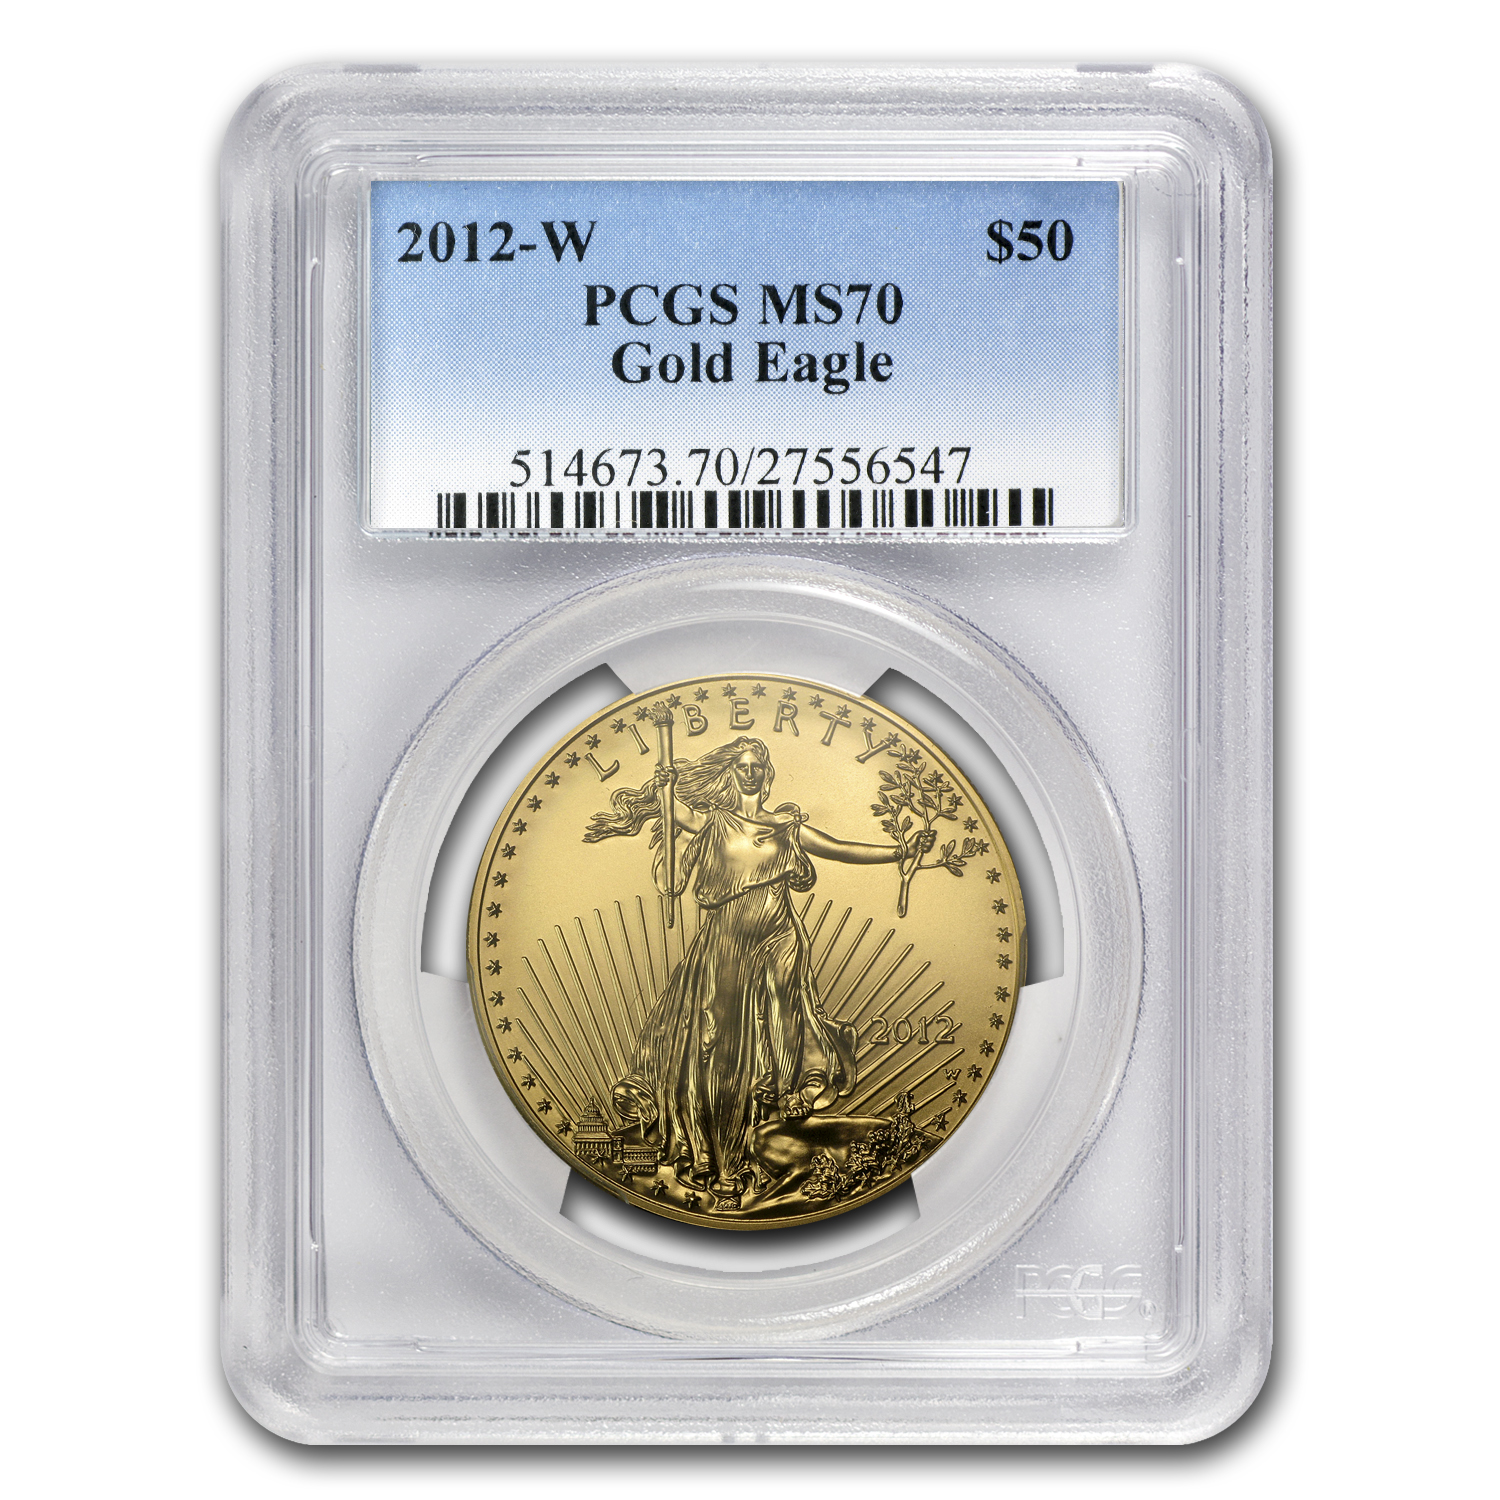 2012-W 1 oz Burnished Gold Eagle MS-70 PCGS